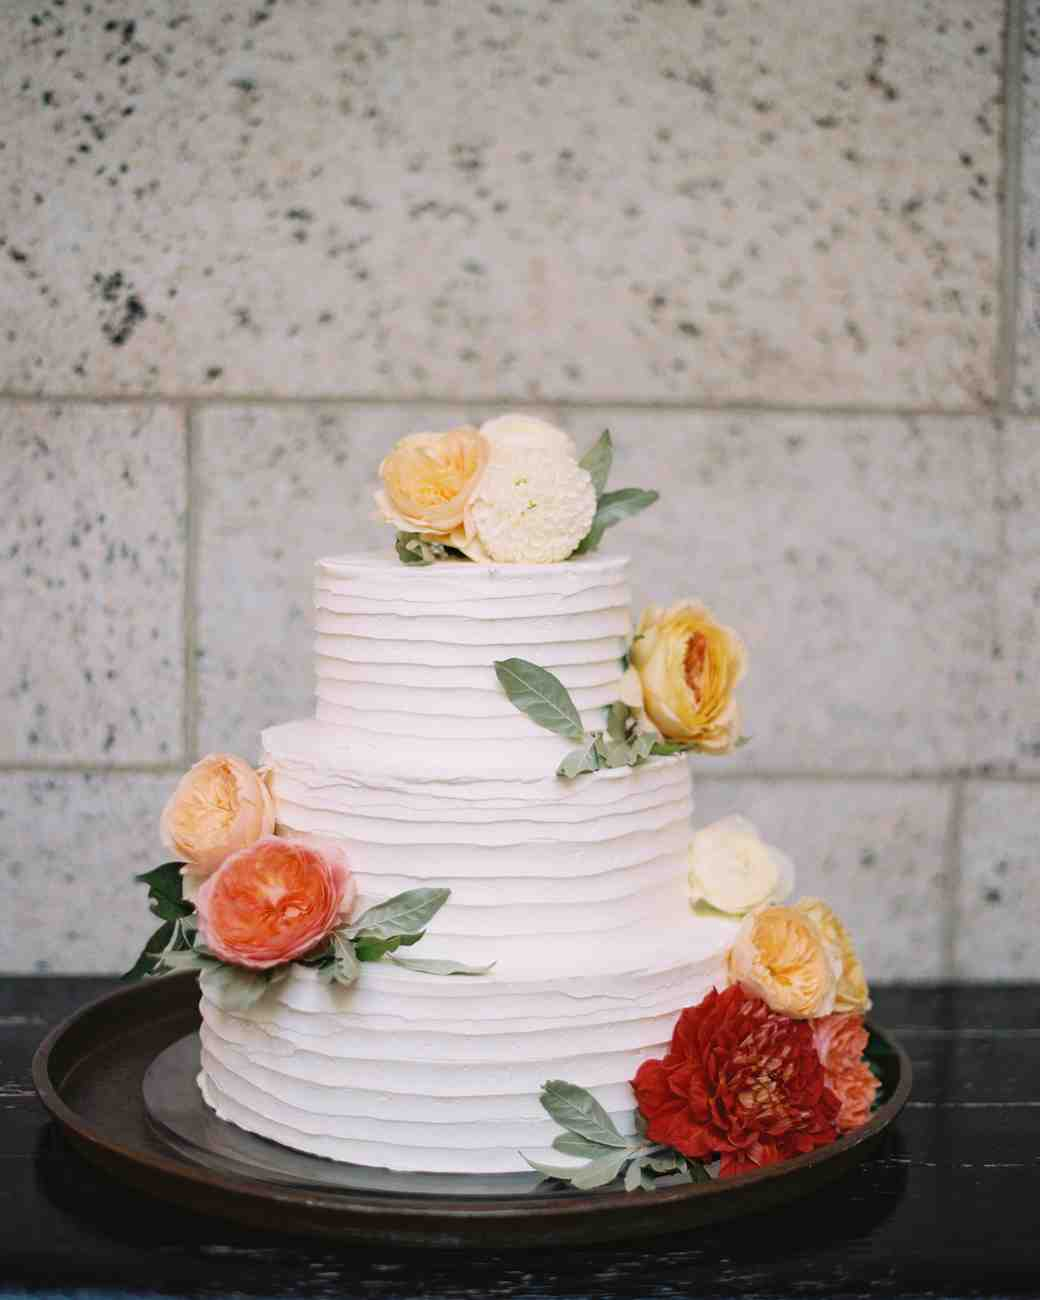 Three-Tiered White Wedding Cake with Zinnias and Roses